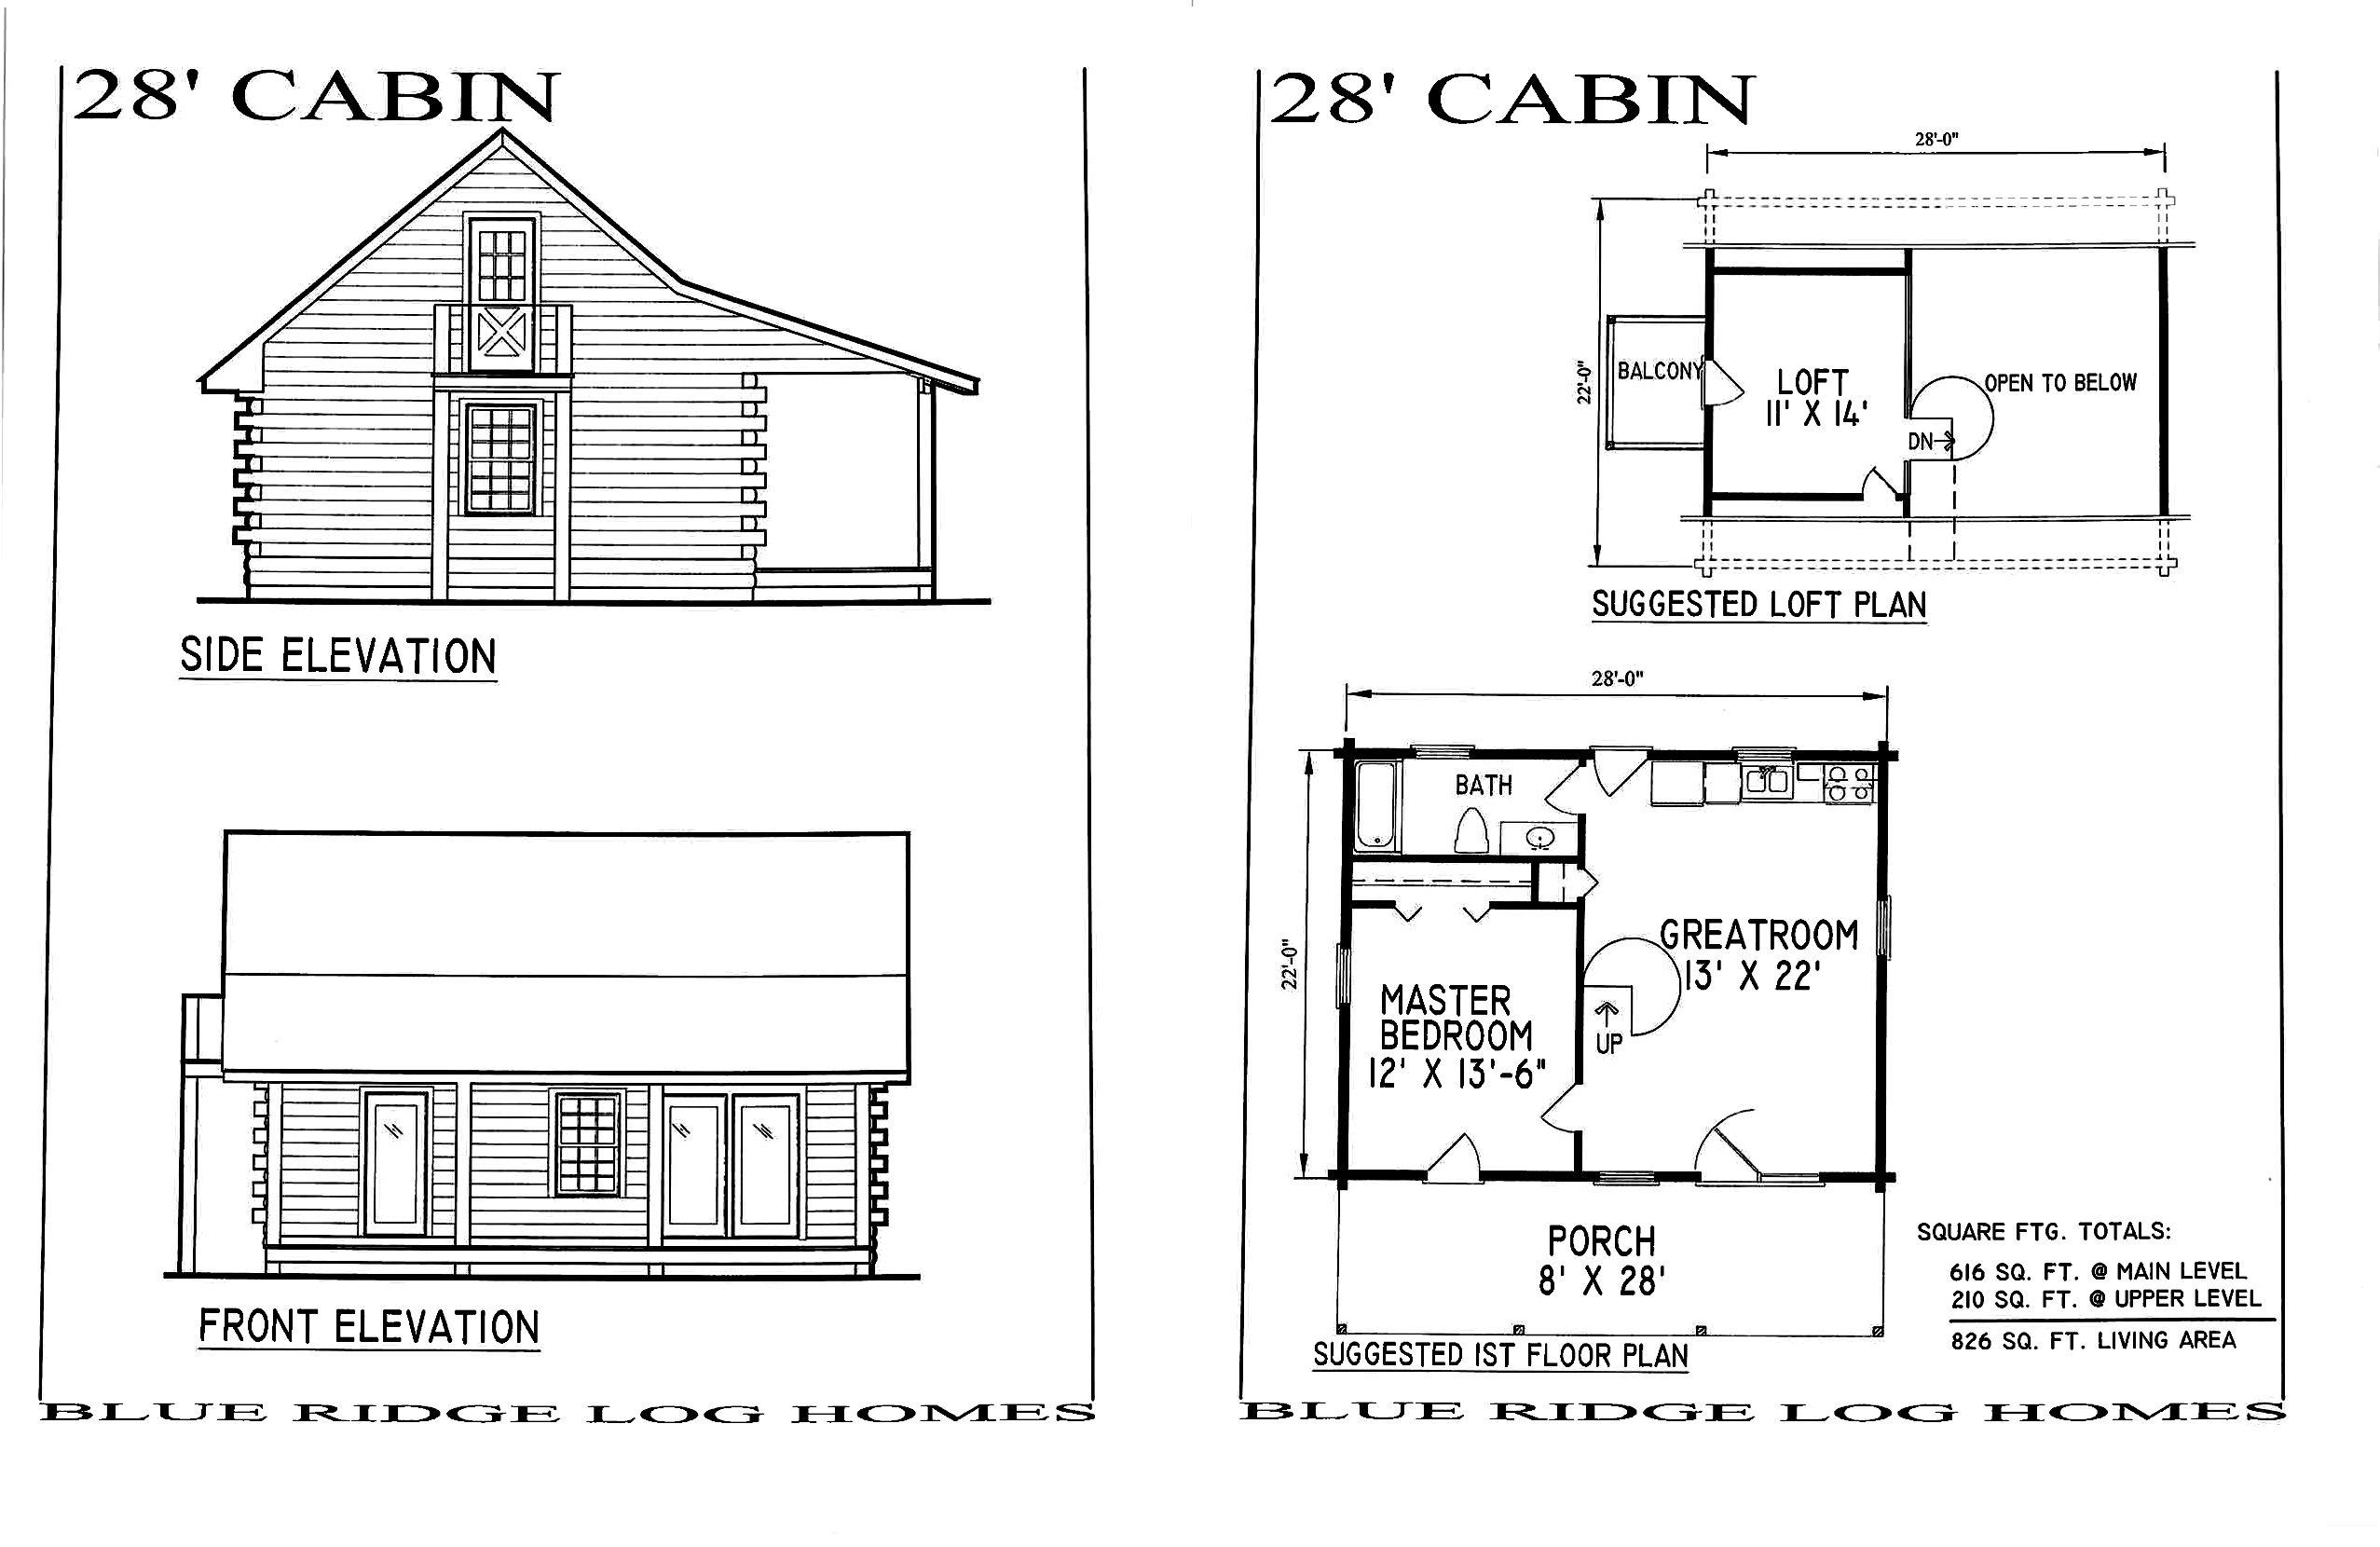 1200 Square Foot Cabins in side in out Belowmore structures